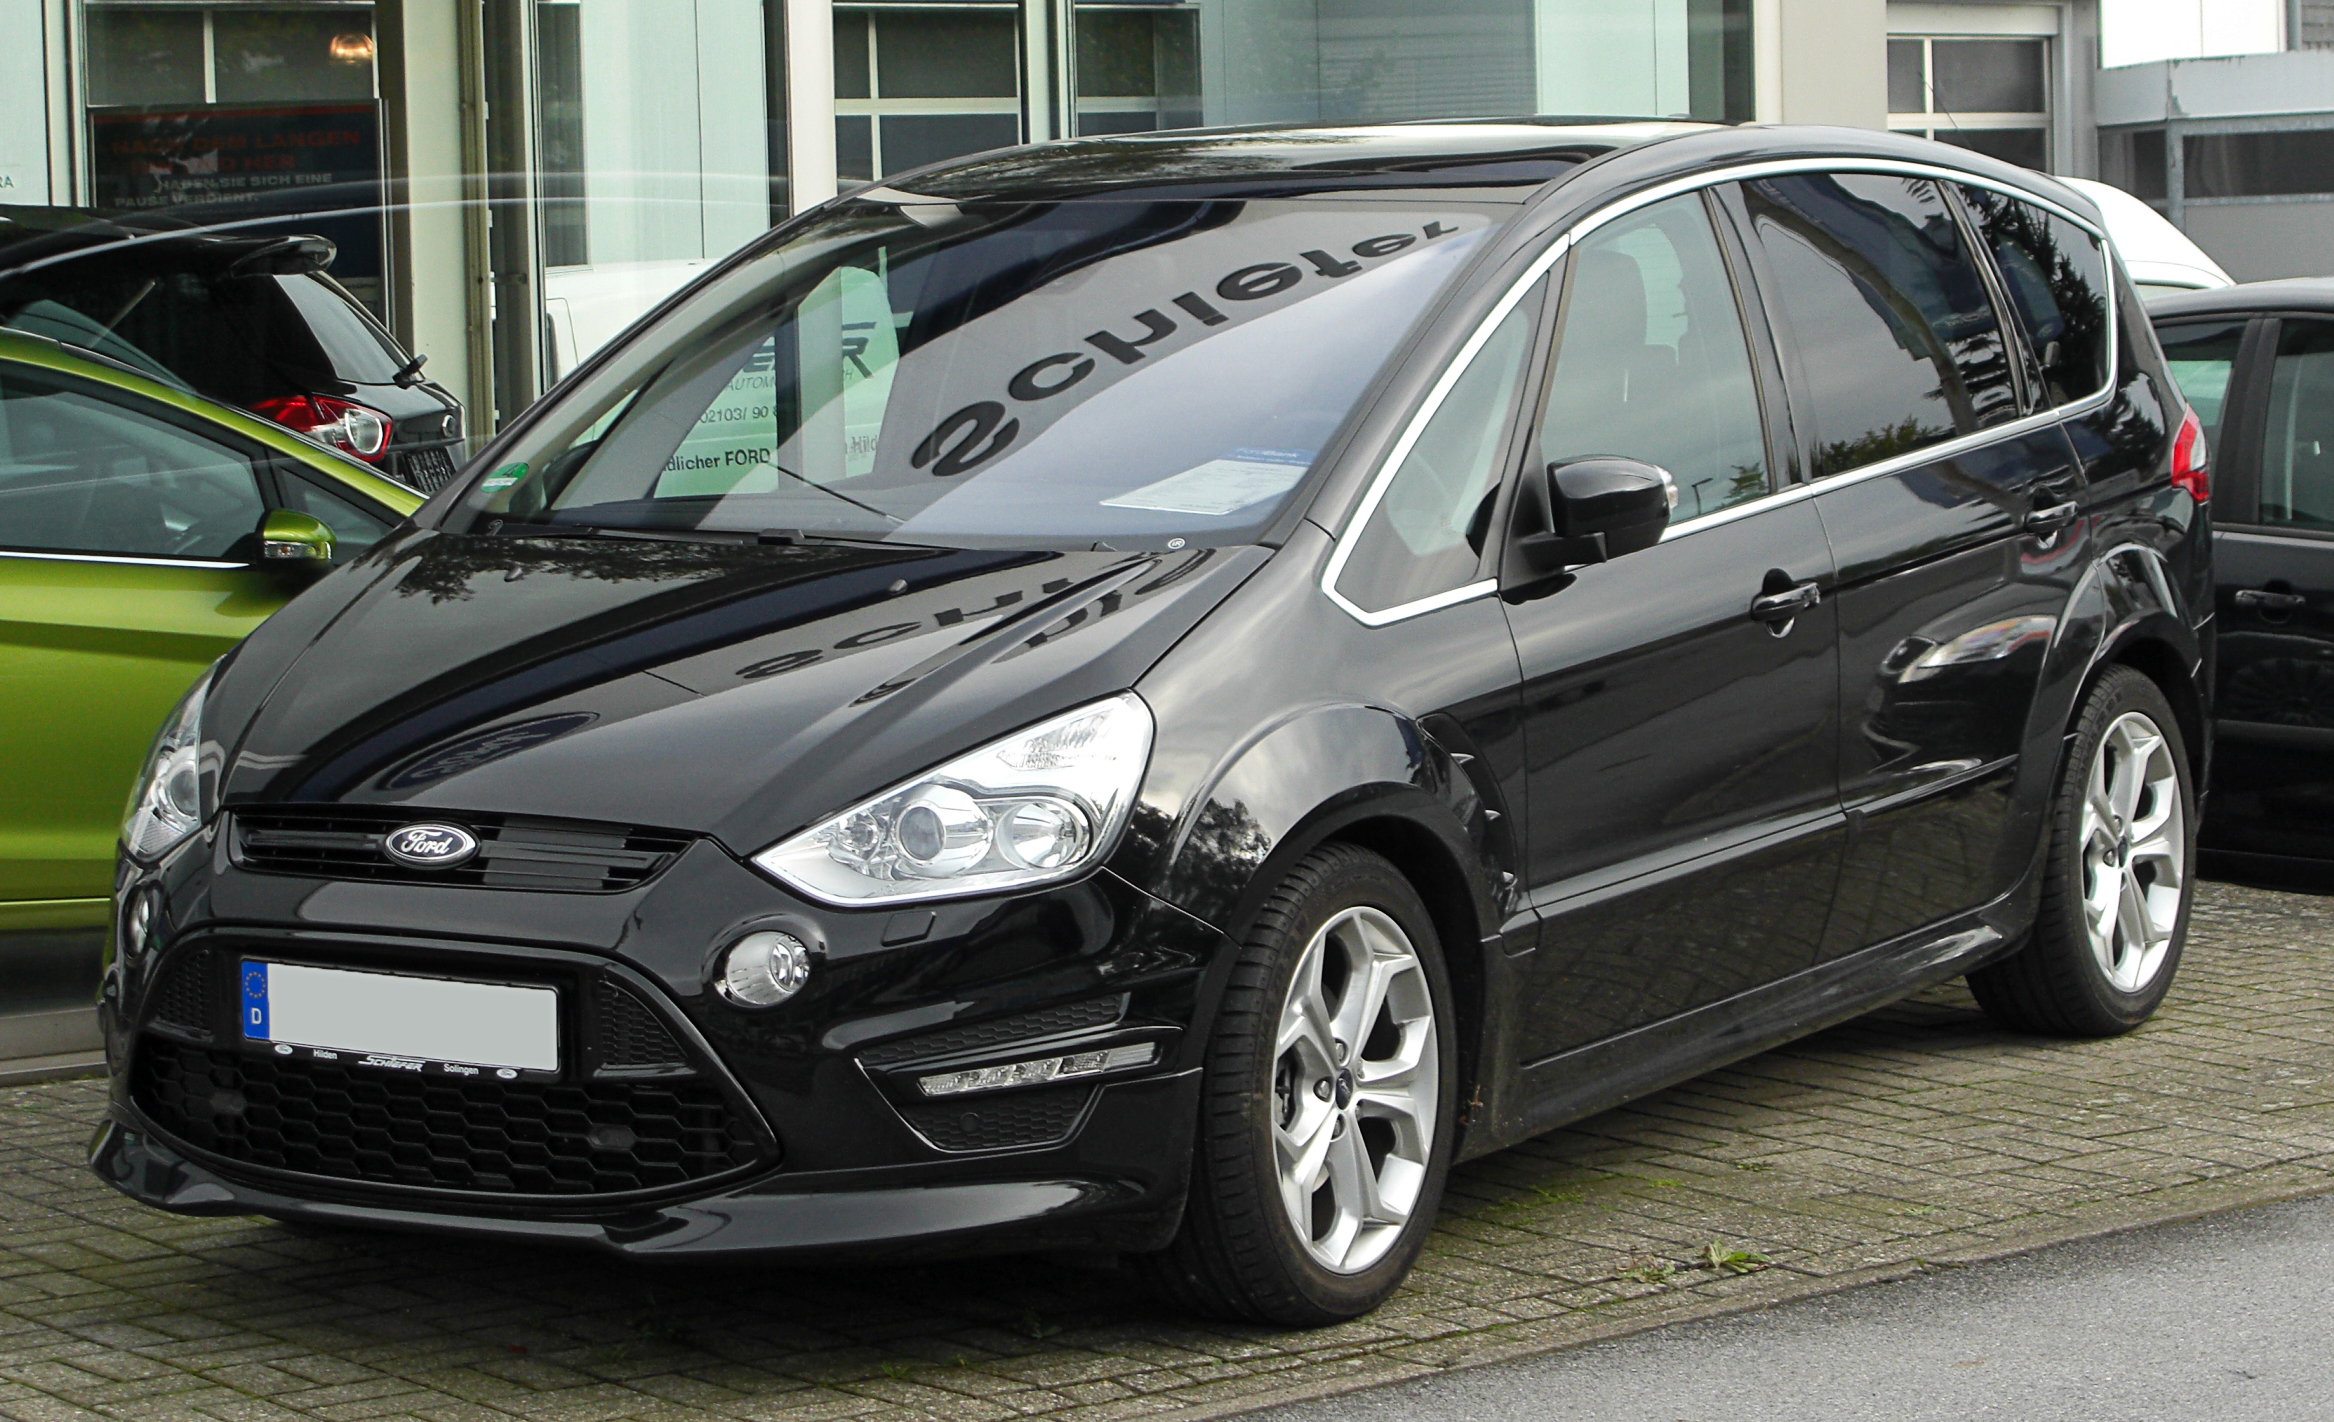 Ford S-Max 2.0 2012 photo - 10